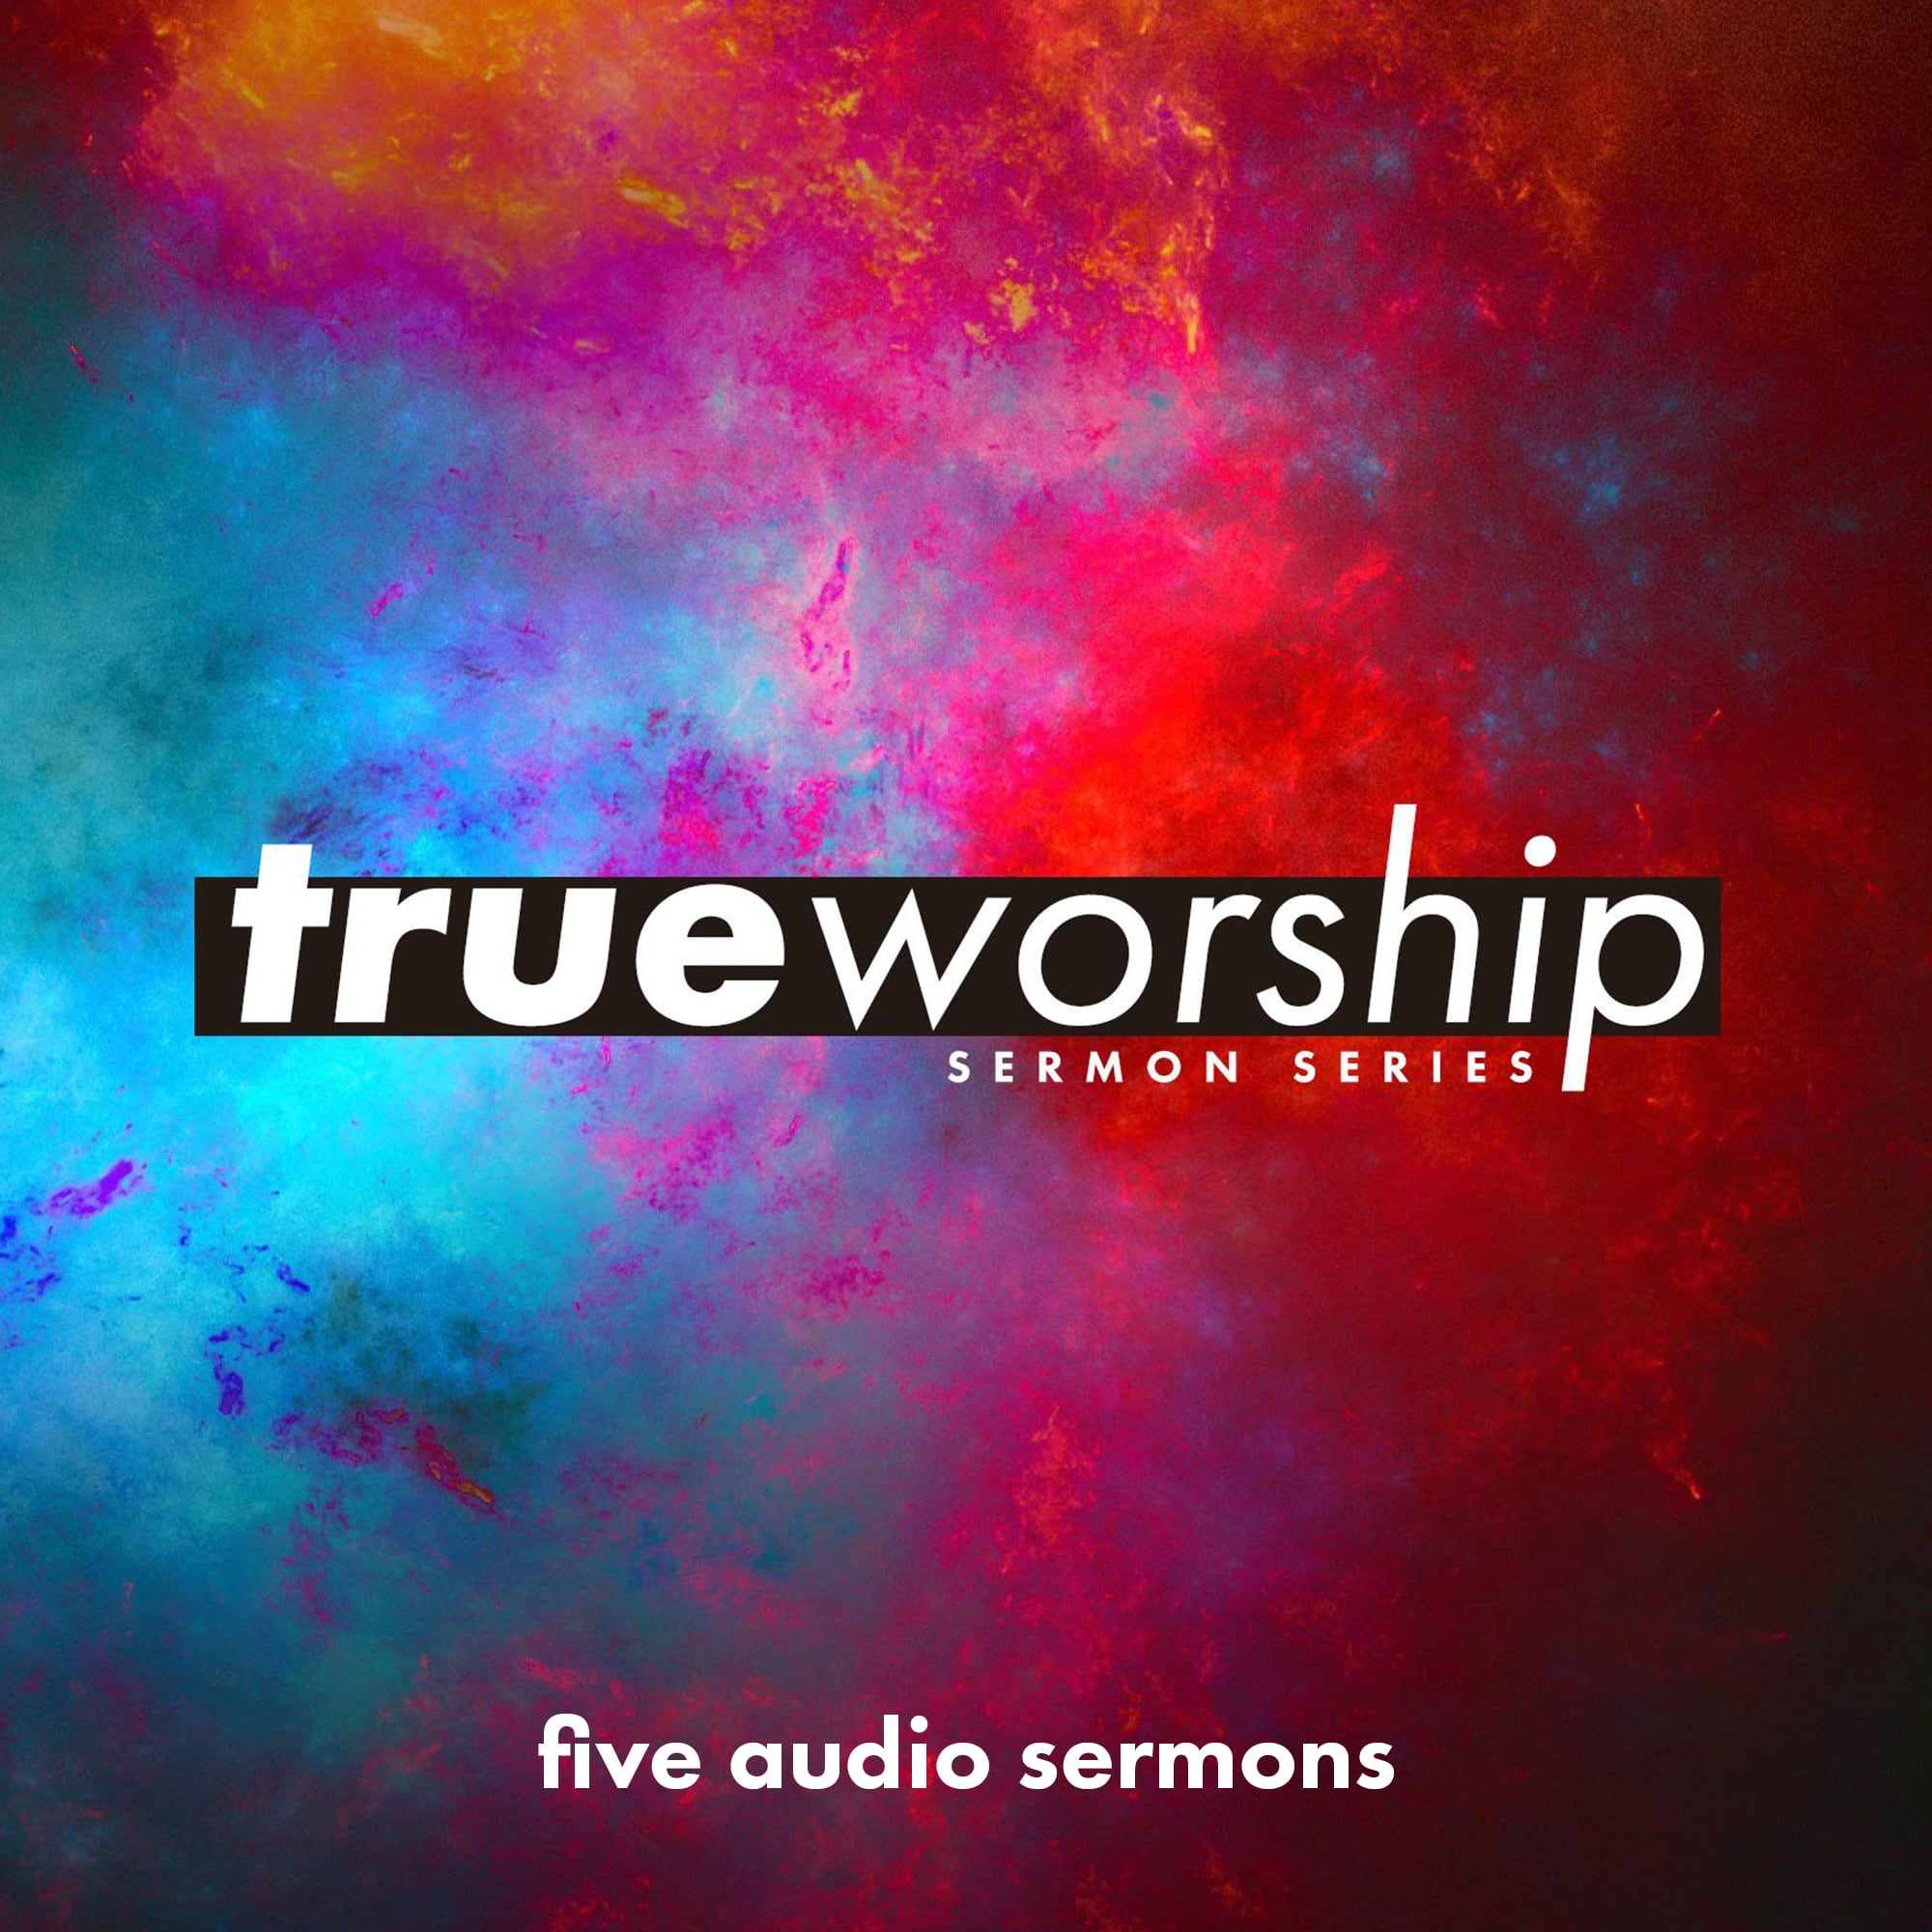 Series: True Worship